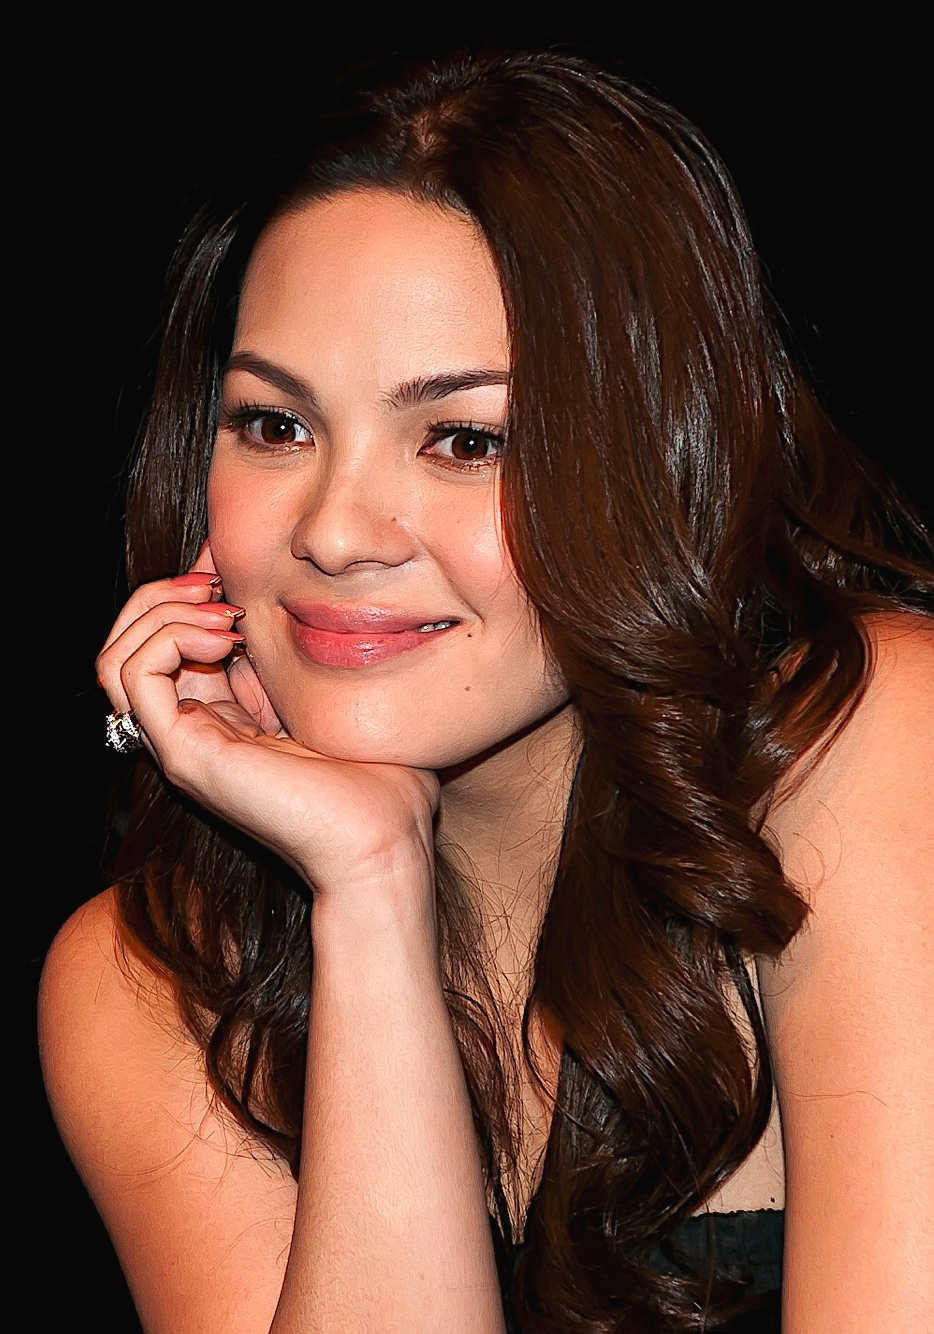 kc concepcion dating again Mega daughter kc concepcion is dating again this was revealed by the actress herself on monday's episode of lifestyle magazine program kris tv yes, i'm dating.